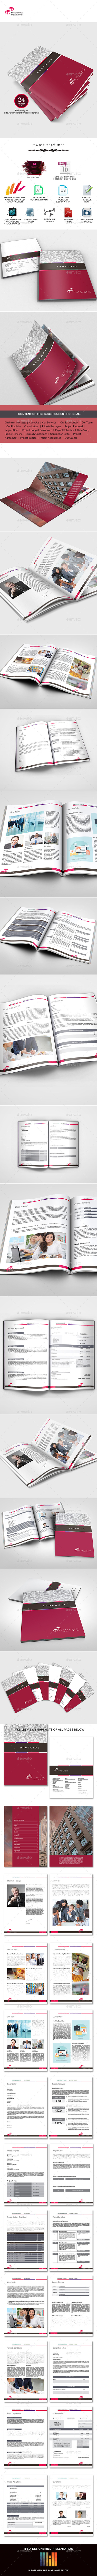 Sugercube InDesign Proposal Template for Business - Proposals & Invoices Stationery